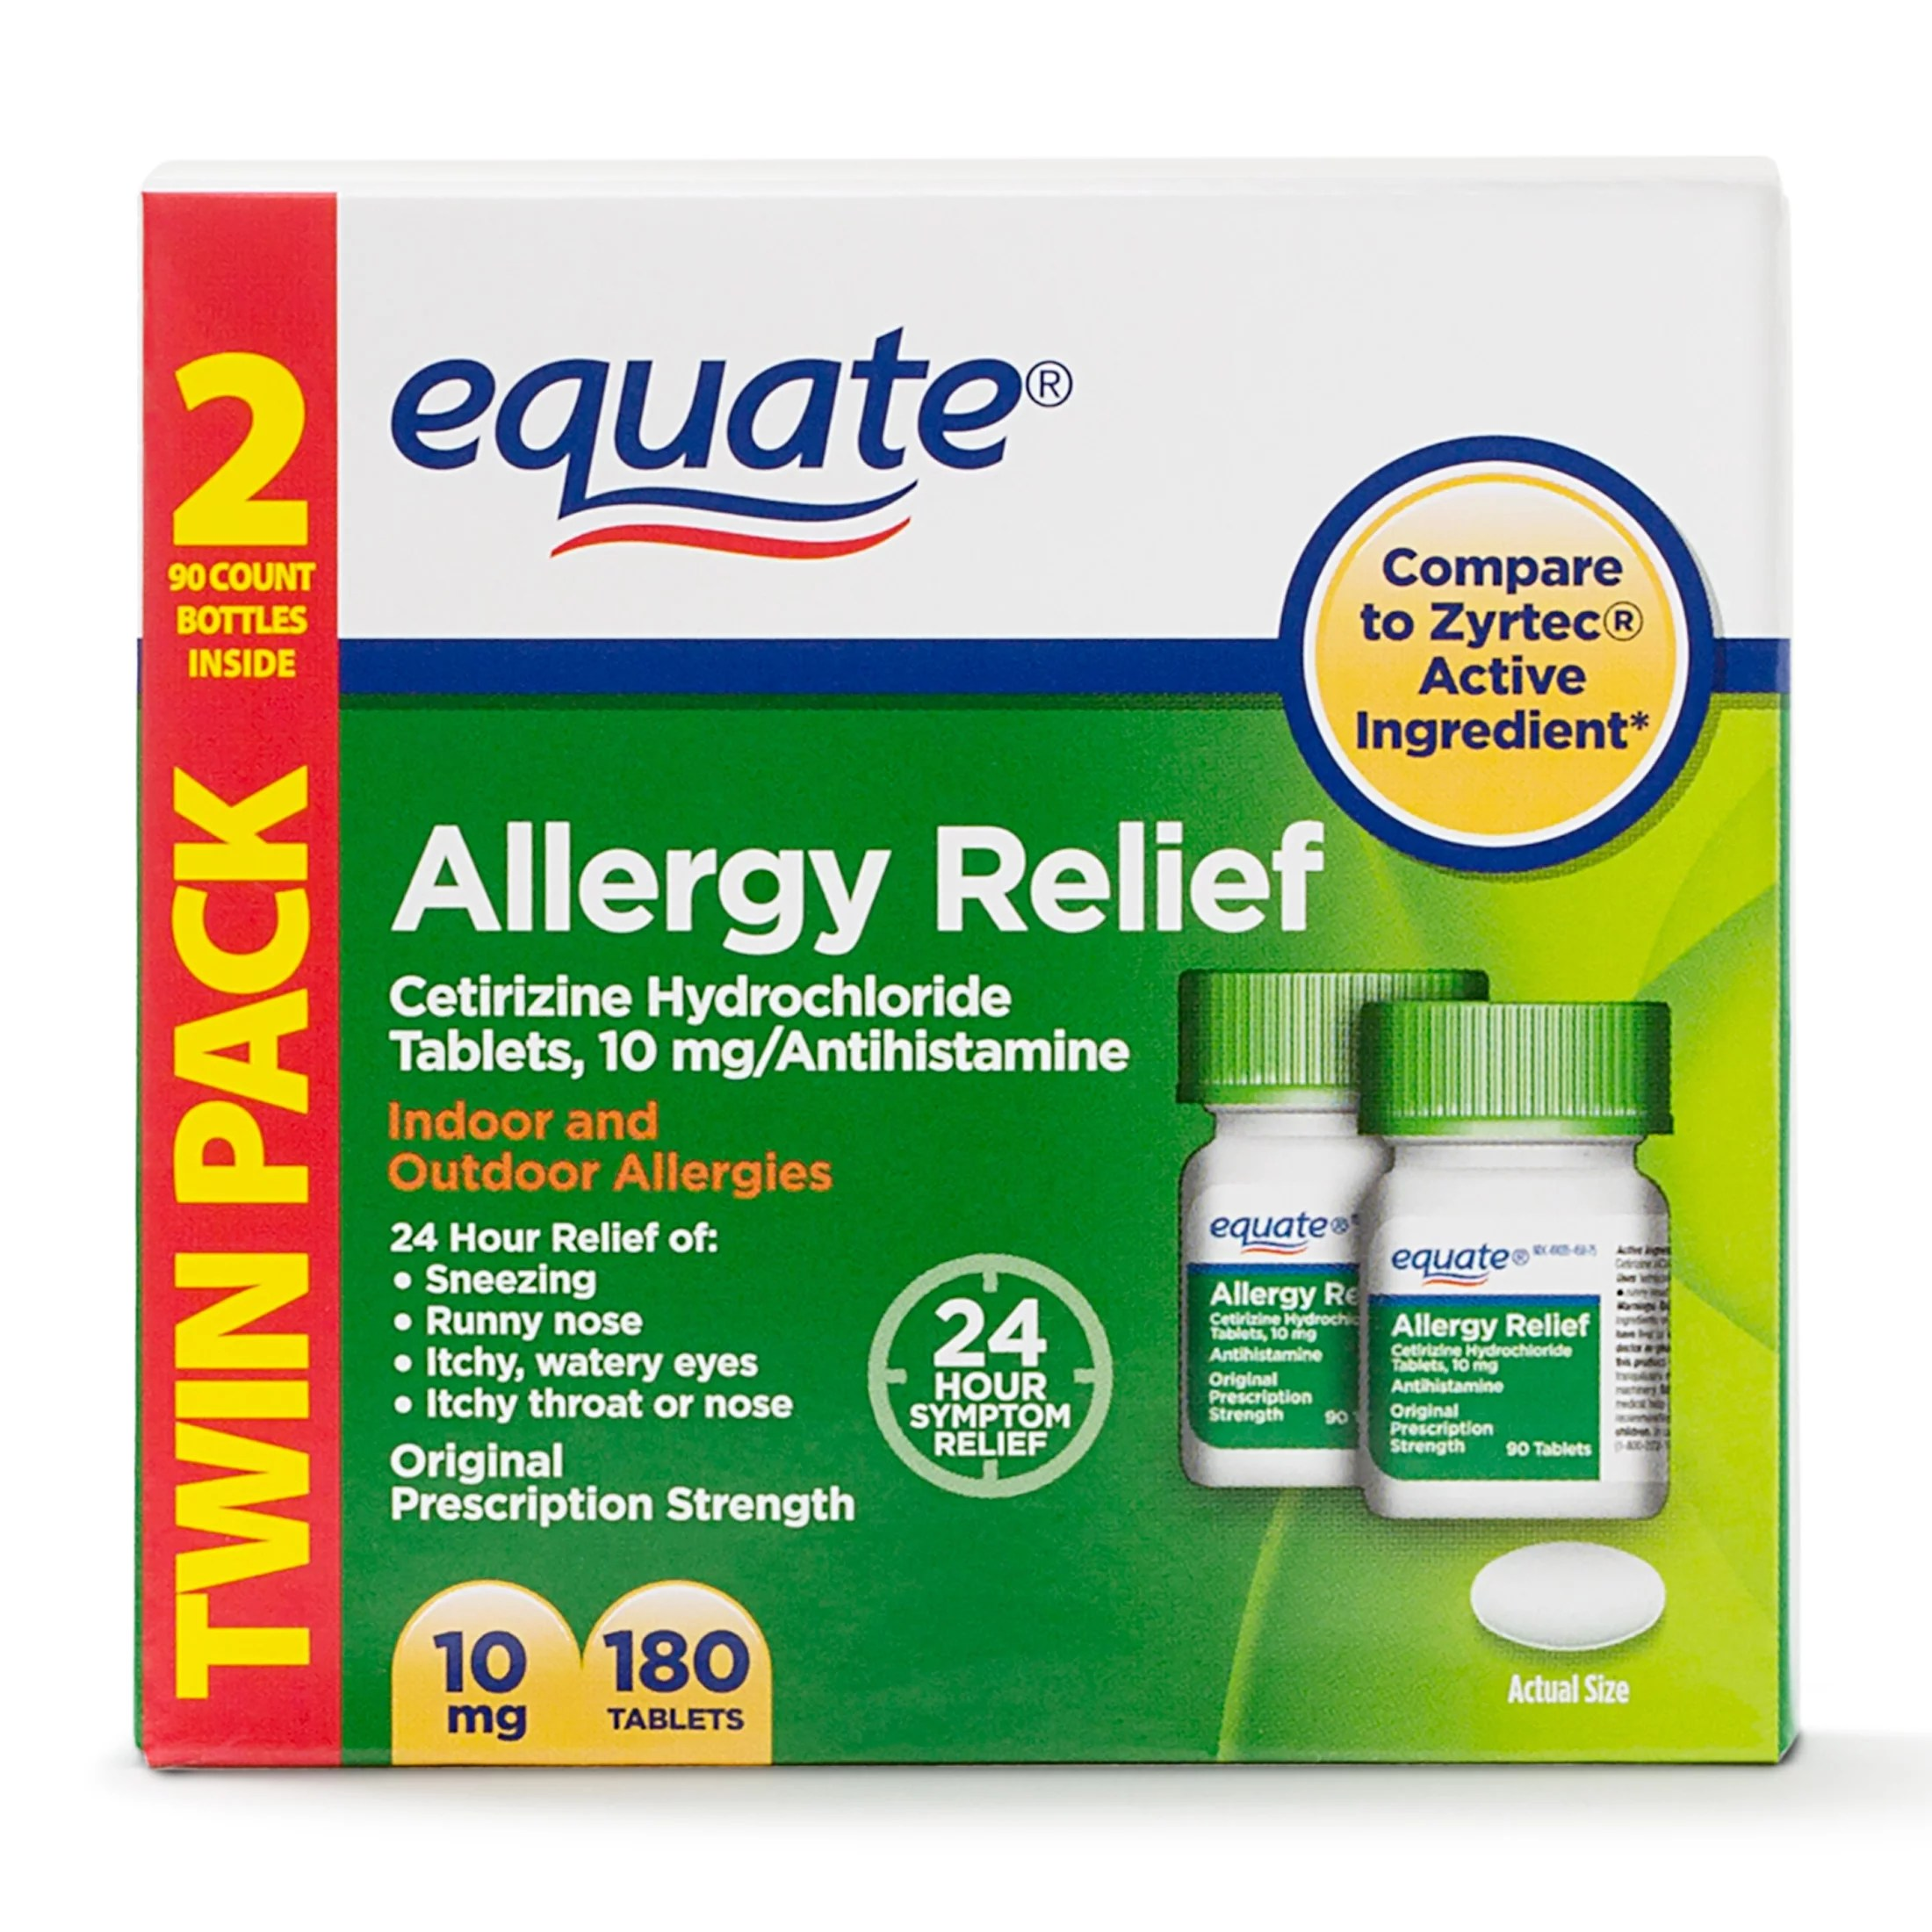 Equate Allergy Relief Cetirizine Hydrochloride Tablets ...